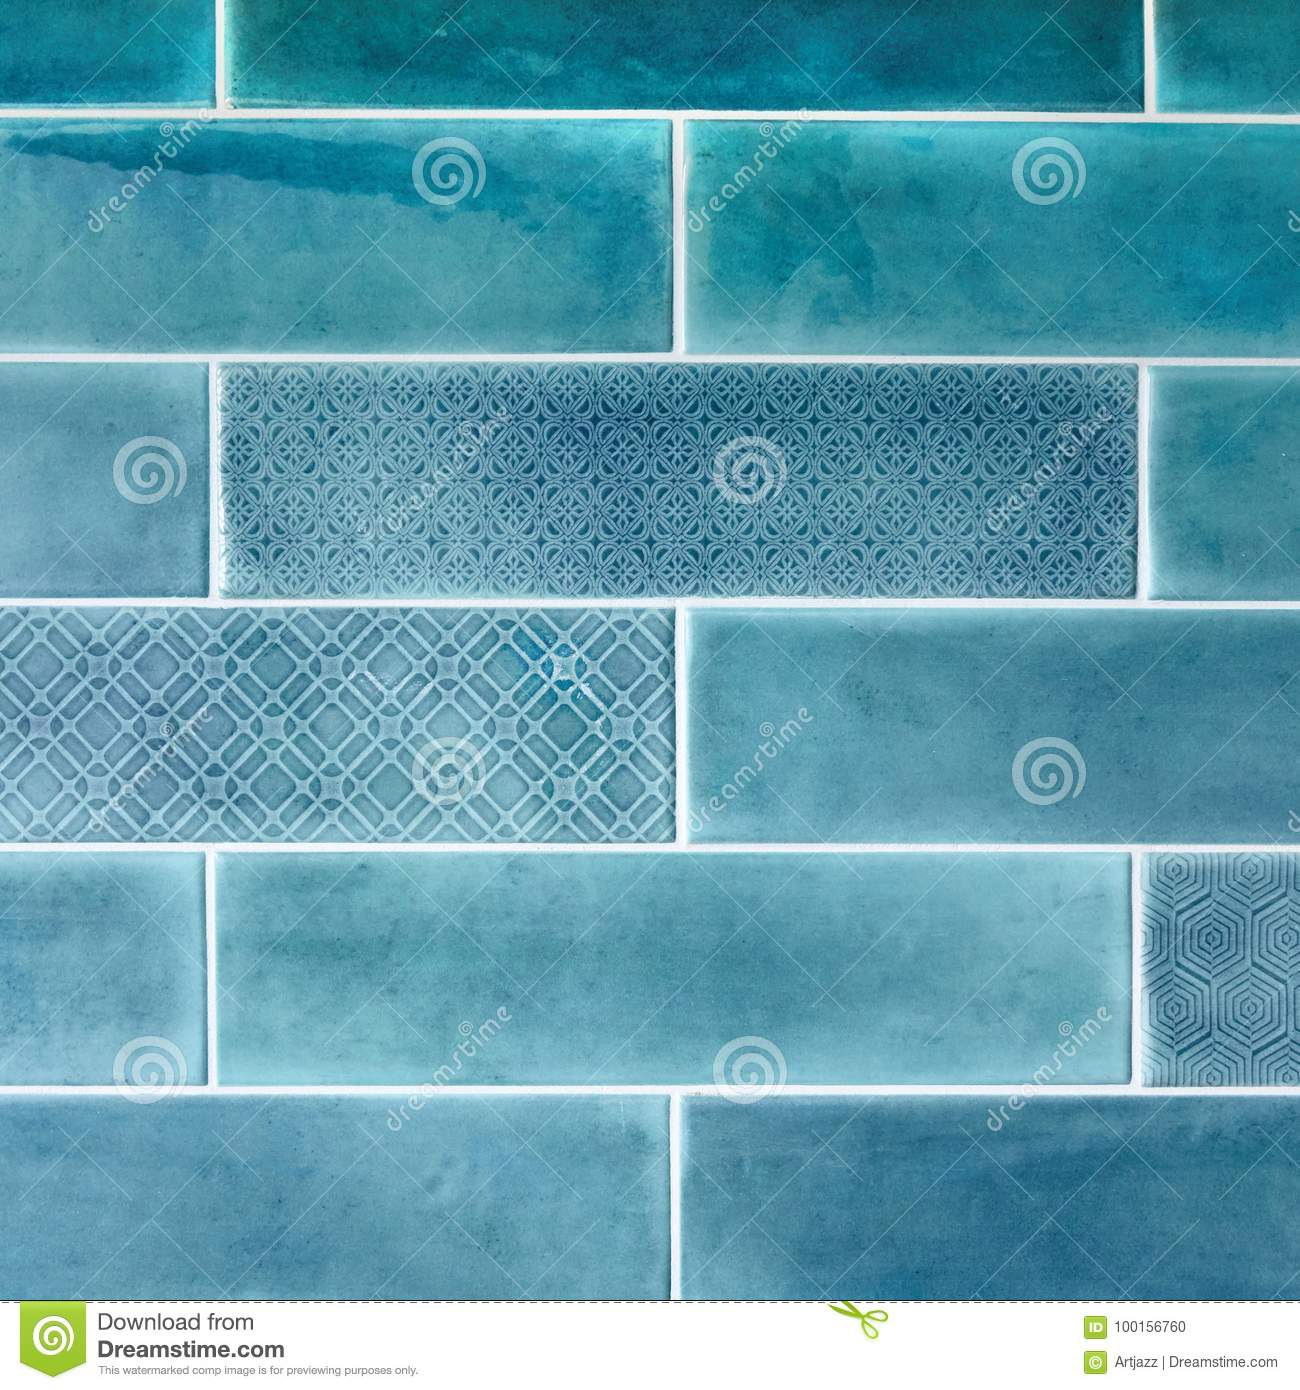 Ceramic Tiles On The Wall In Blue. Stock Photo - Image of decoration ...